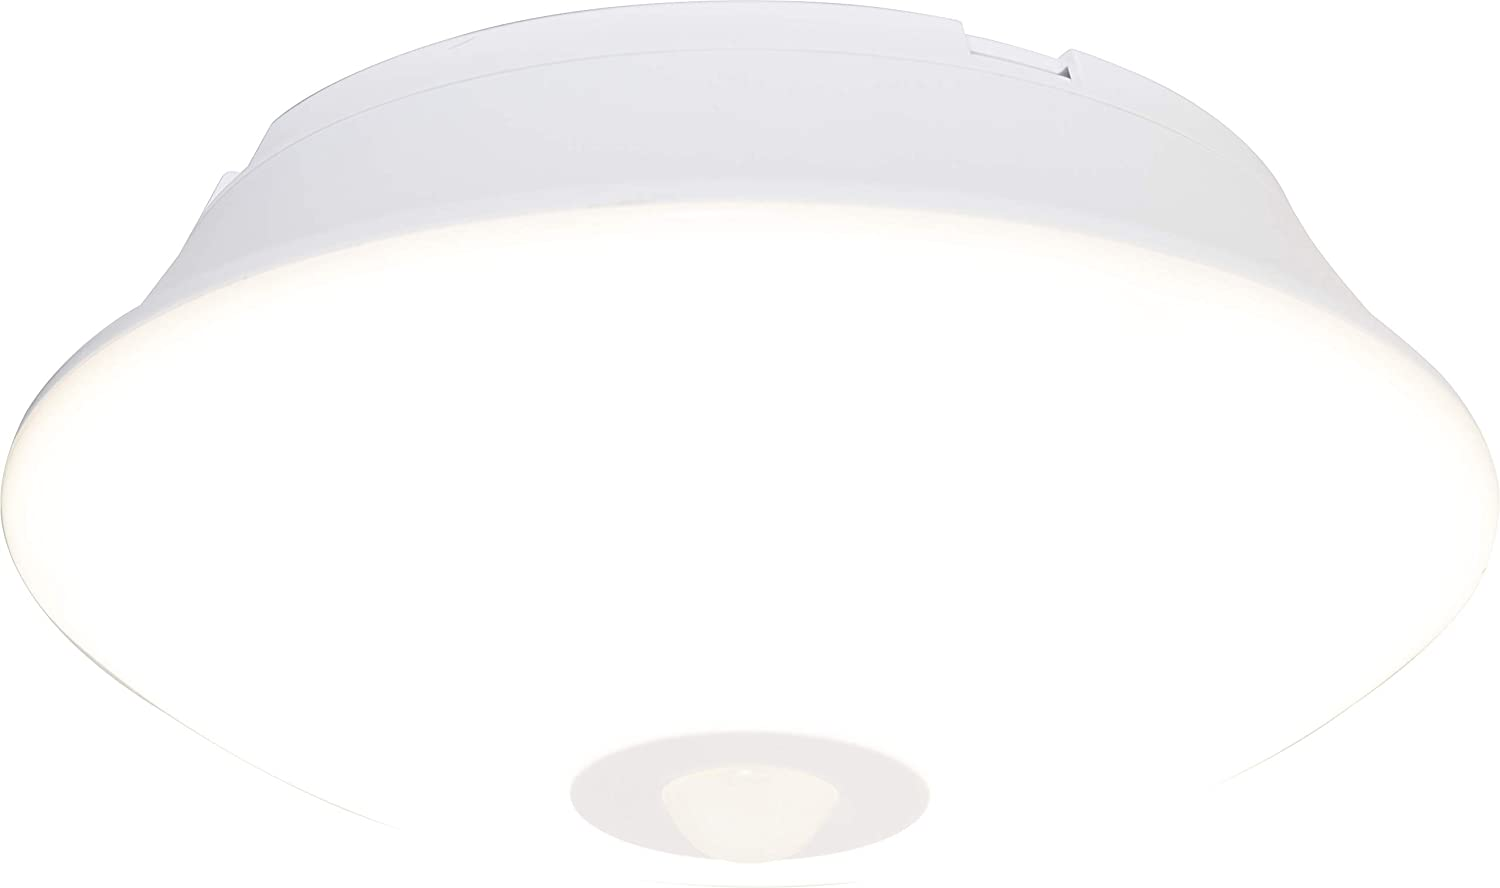 Energizer Motion-Activated LED Ceiling Light, Battery Operated, 300 Lumens, No Wiring Needed, 15ft. Motion Sensing, Great for Laundry Room, Garage, Closets, and More, 39677